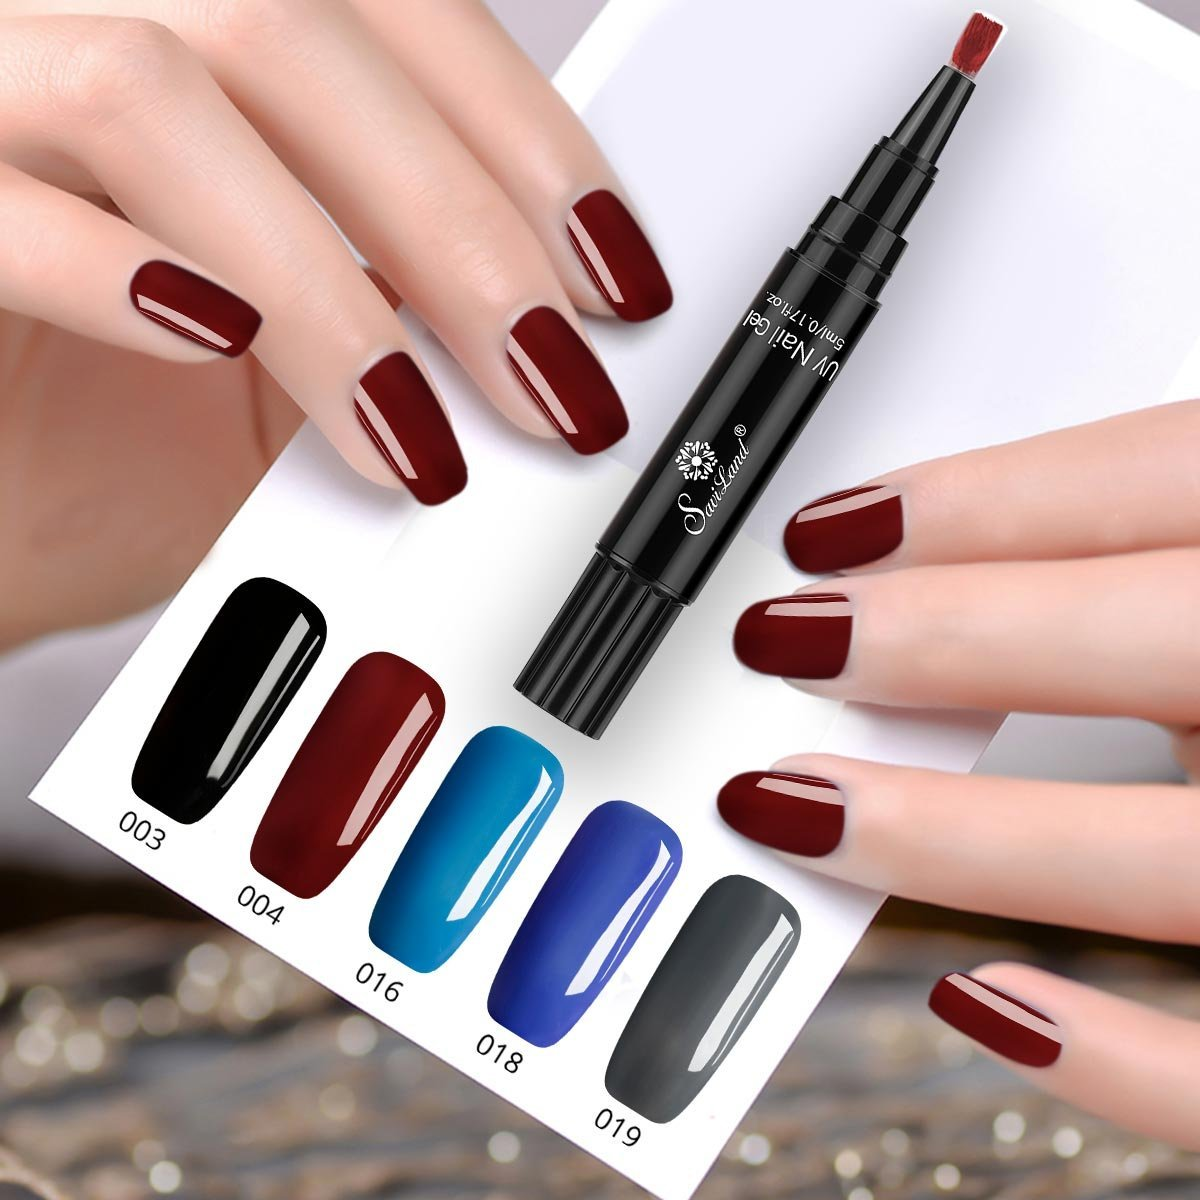 c2dde57496 One Step Gel Nail Polish Pen, No Base Top Coat Need, Saviland 3 in 1 Soak  Off UV LED Nail Varnish Nail Art Kit (Black blue grey red): Amazon.co.uk:  Beauty